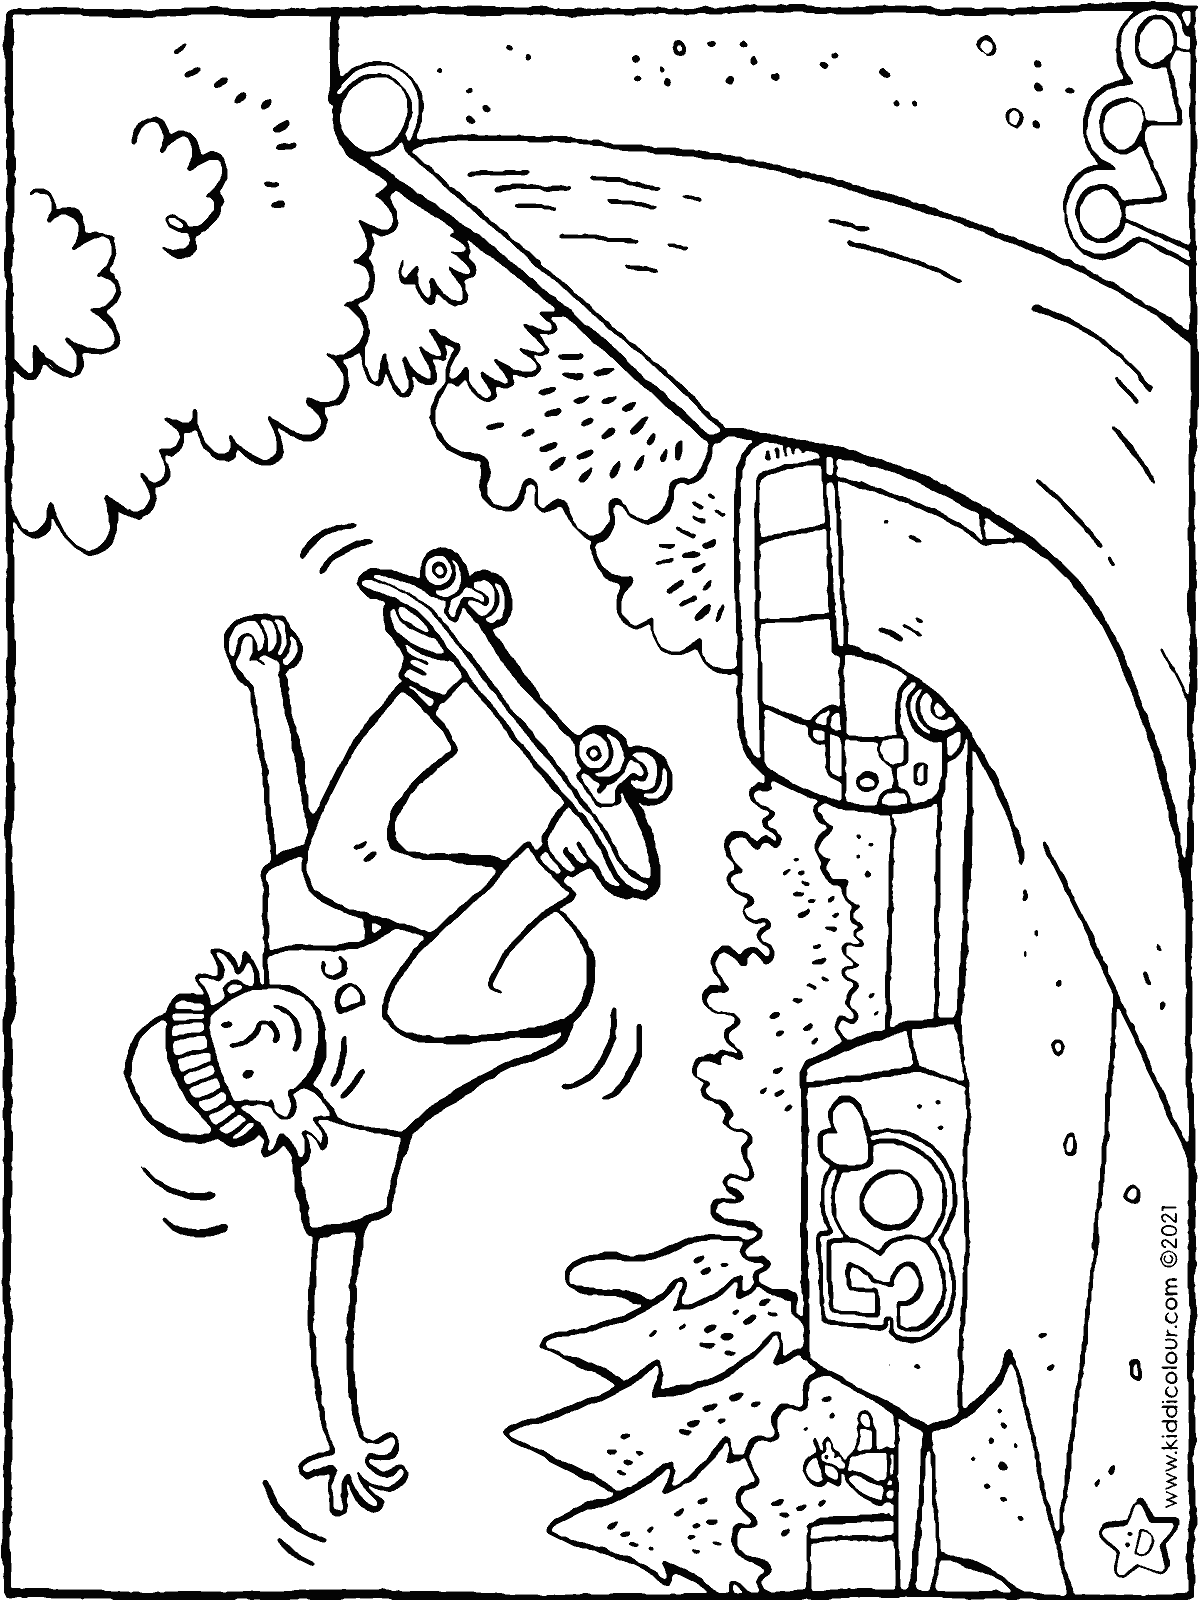 skateboarding in the skatepark colouring page drawing picture 01H